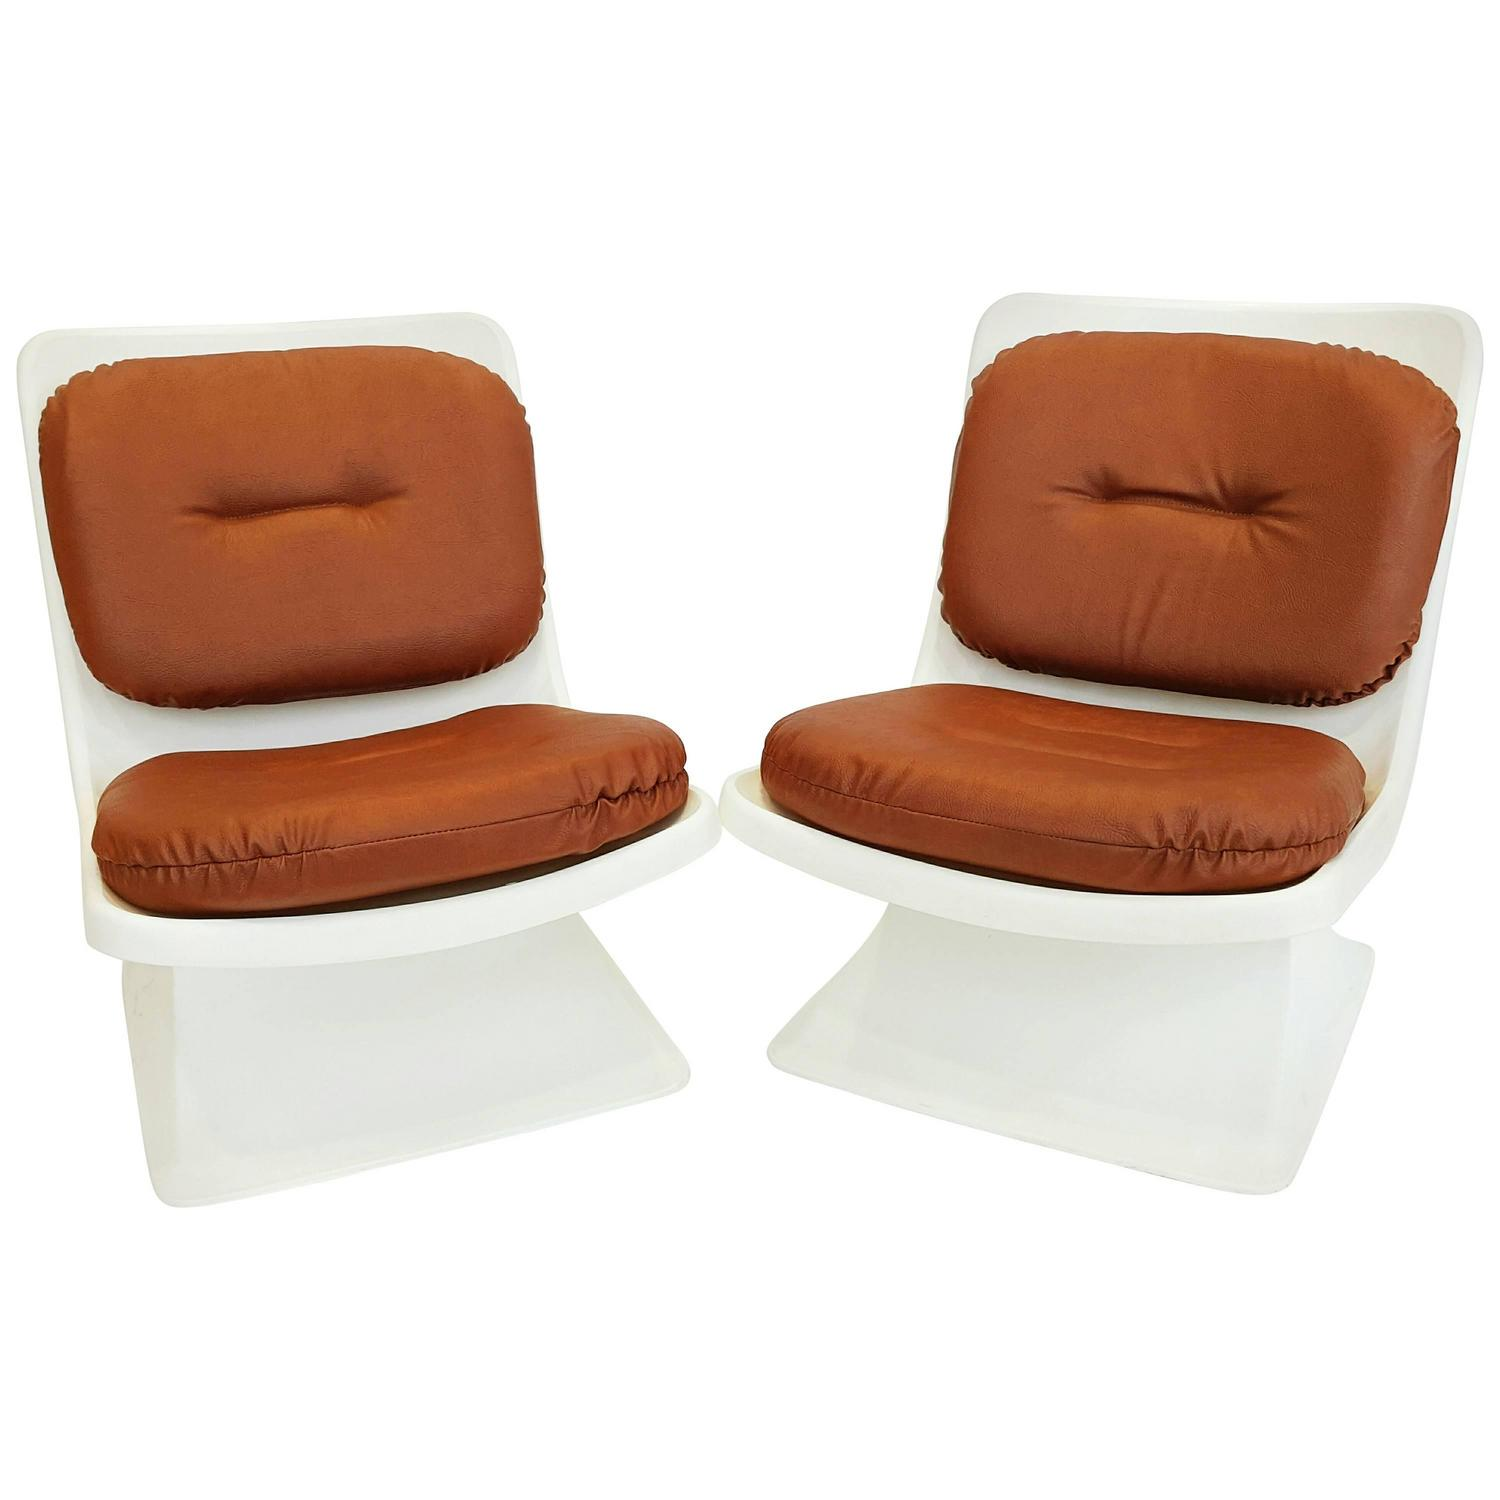 Albert Jacob Armchairs for Grosfillex 1970s For Sale at 1stdibs